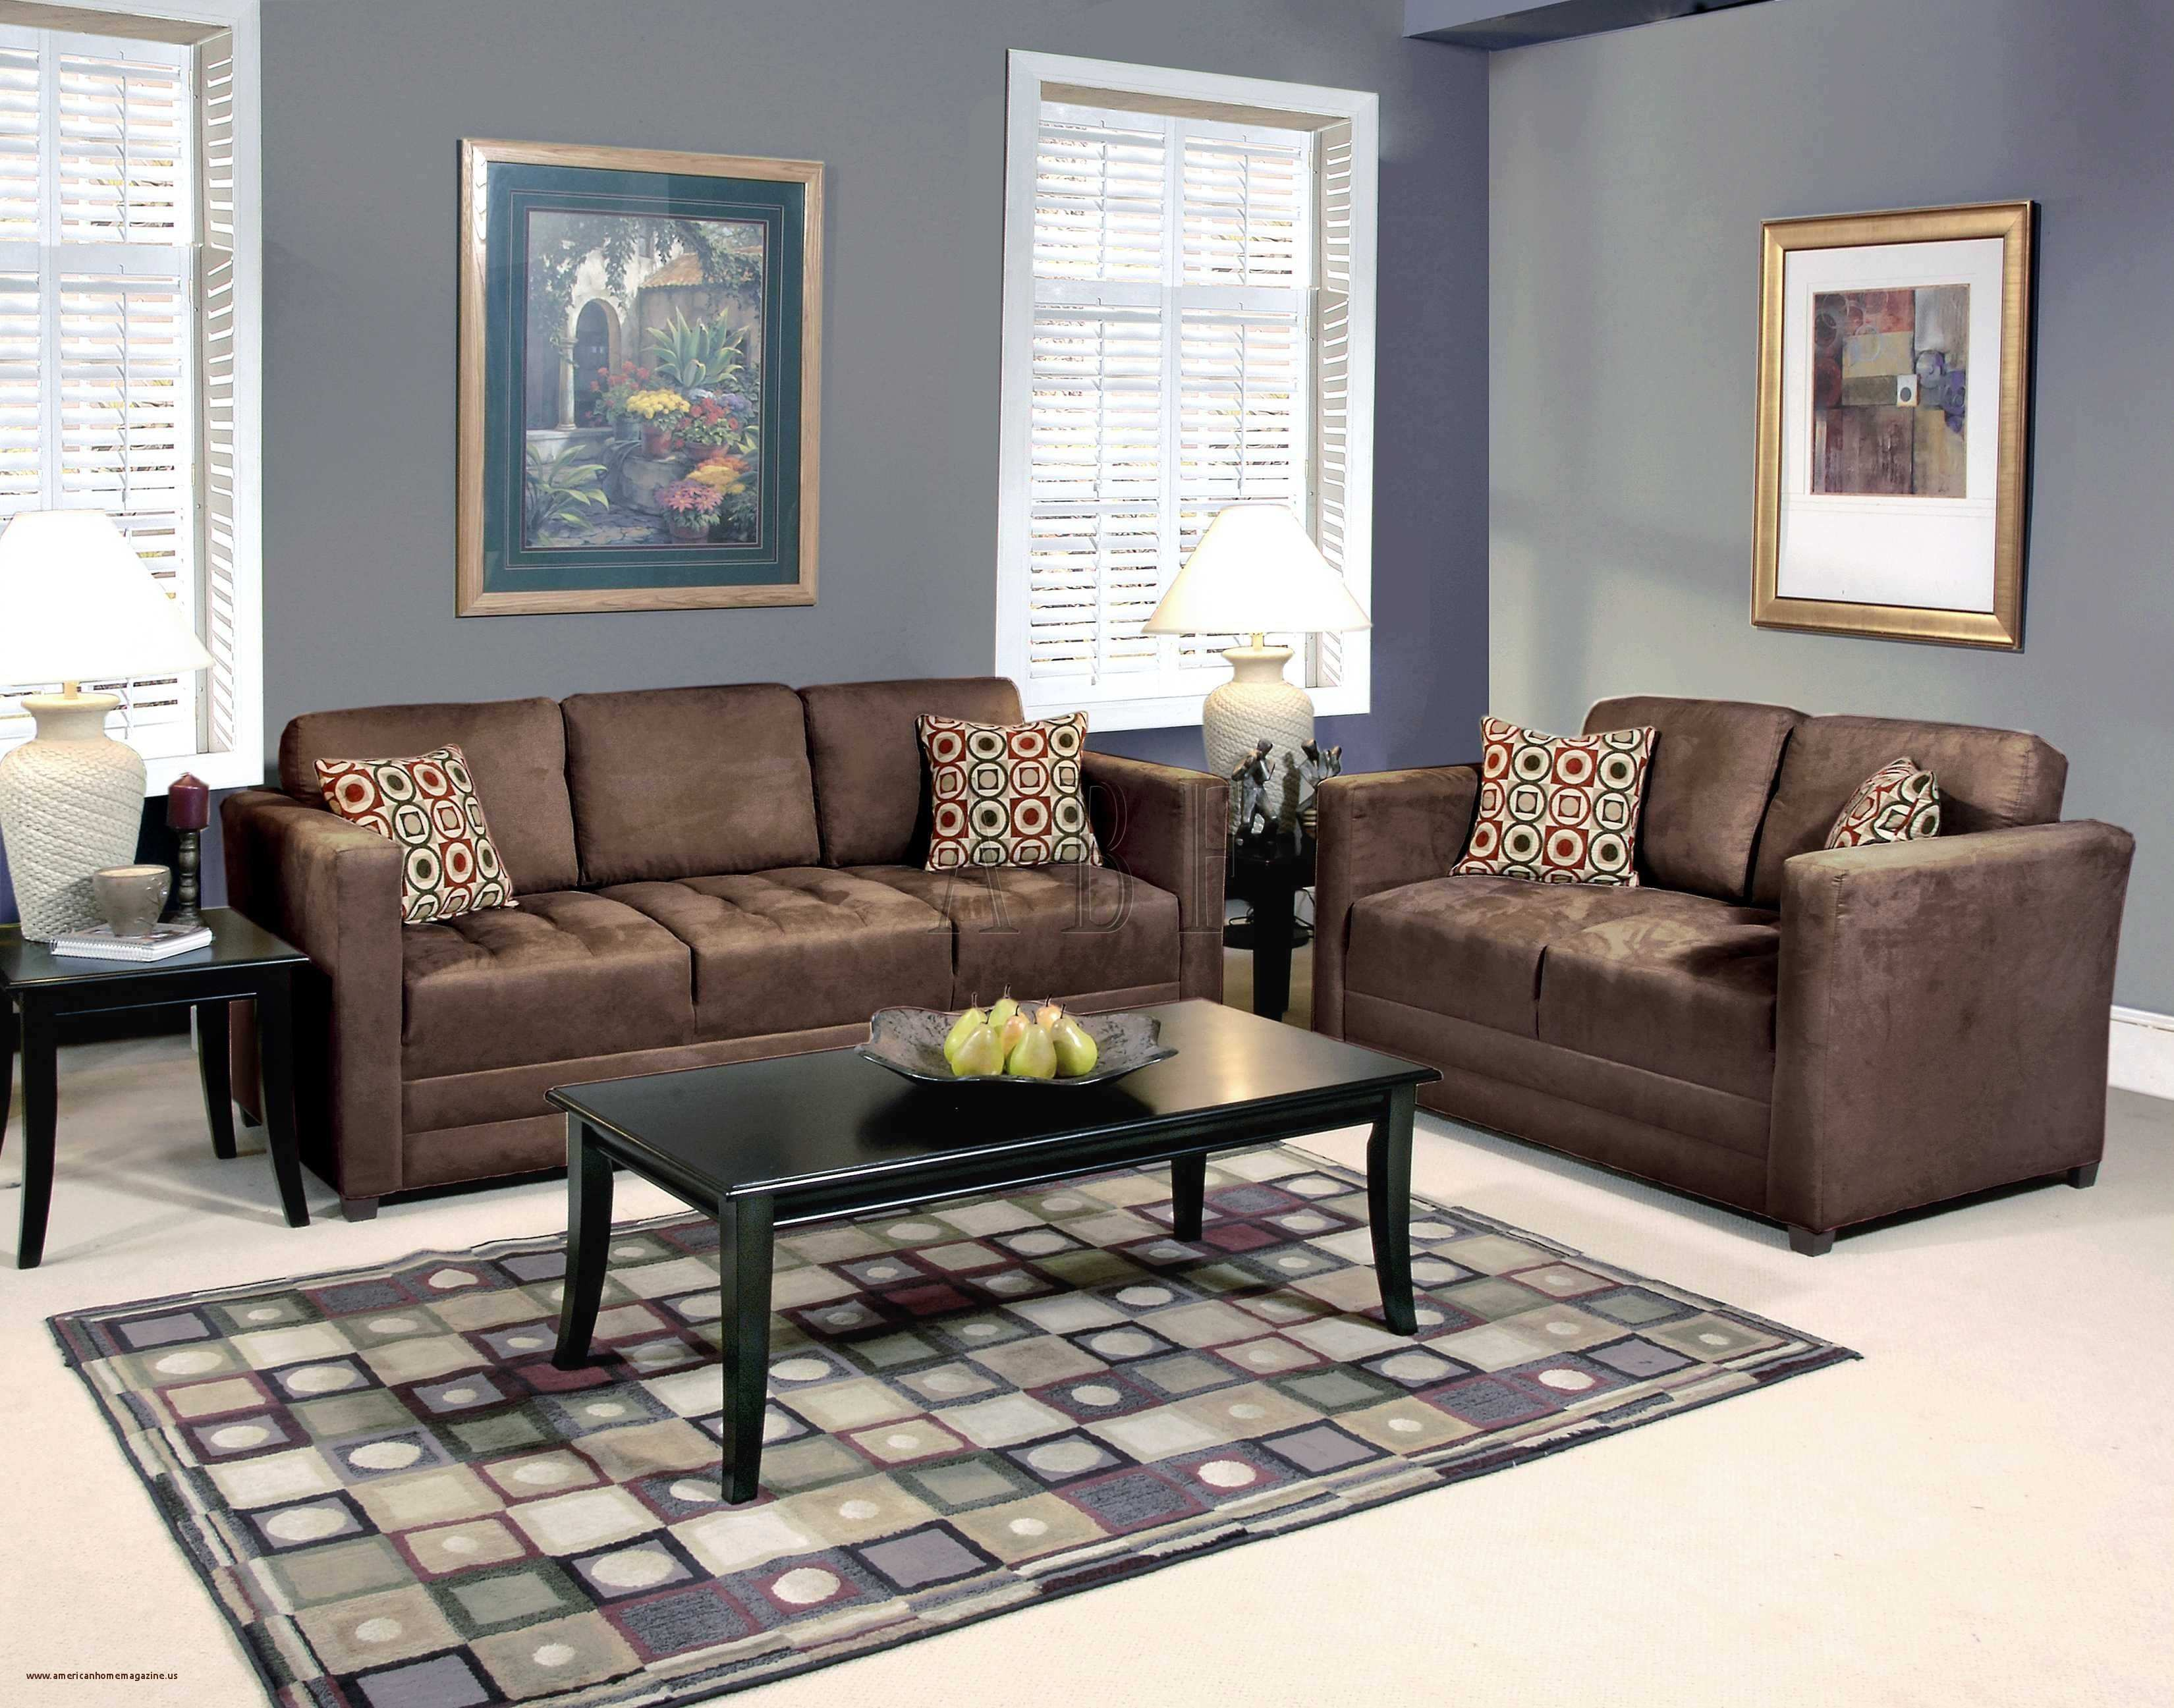 Download Awesome Living Room Decorating Ideas at Low Cost